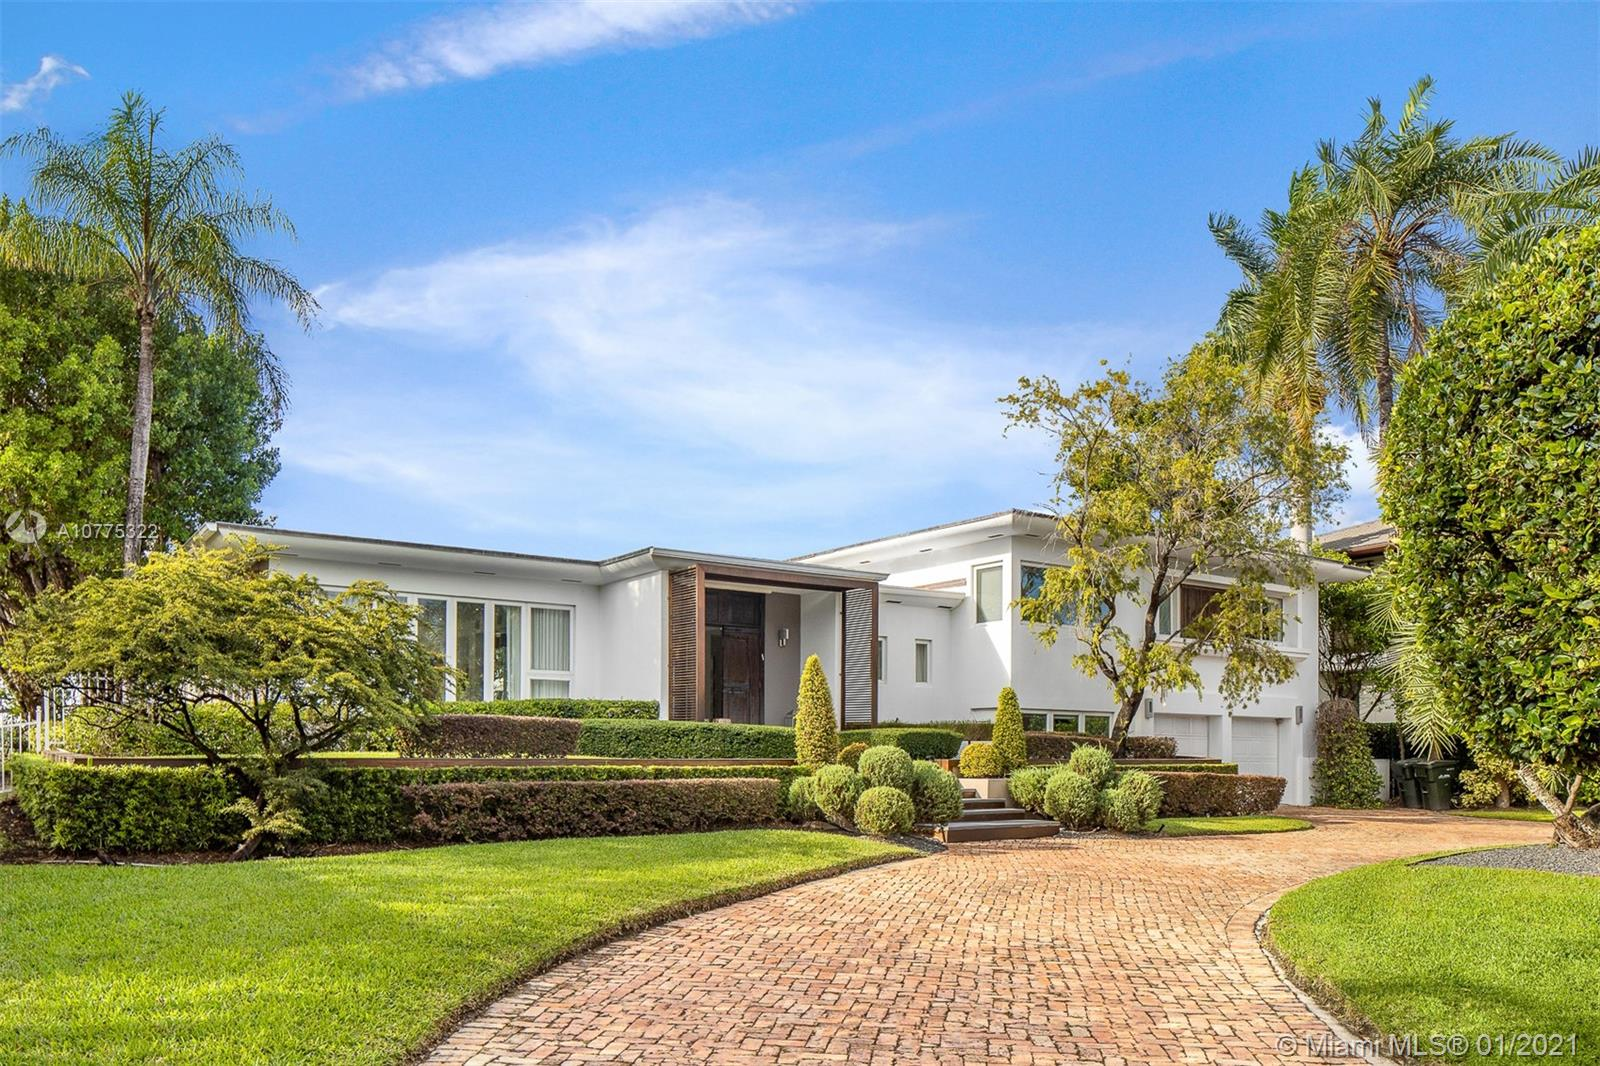 This magnificent MiMo style waterfront home in Bay Harbor enjoys the same views as those of $20mil + homes.  Renovated with curb appeal and dramatic Western exposure. This open, split plan with wood and white glass flooring throughout is perfect for hosting. The master suite is perched right above the water and the dual master bath is spacious and modern. A contemporary eat-in kitchen also faces the prized Western views. Situated on a 20,000SF lot on the premier part of the street with 112 FT on the Biscayne Bay, this is prime real estate. Outdoor entertaining is special with a sunken summer kitchen, lush landscaping throughout, and an oversized pool to enjoy all year round. Live minutes from Bal Harbour Shops and surrounded top schools. This can be your dream come true on the water!